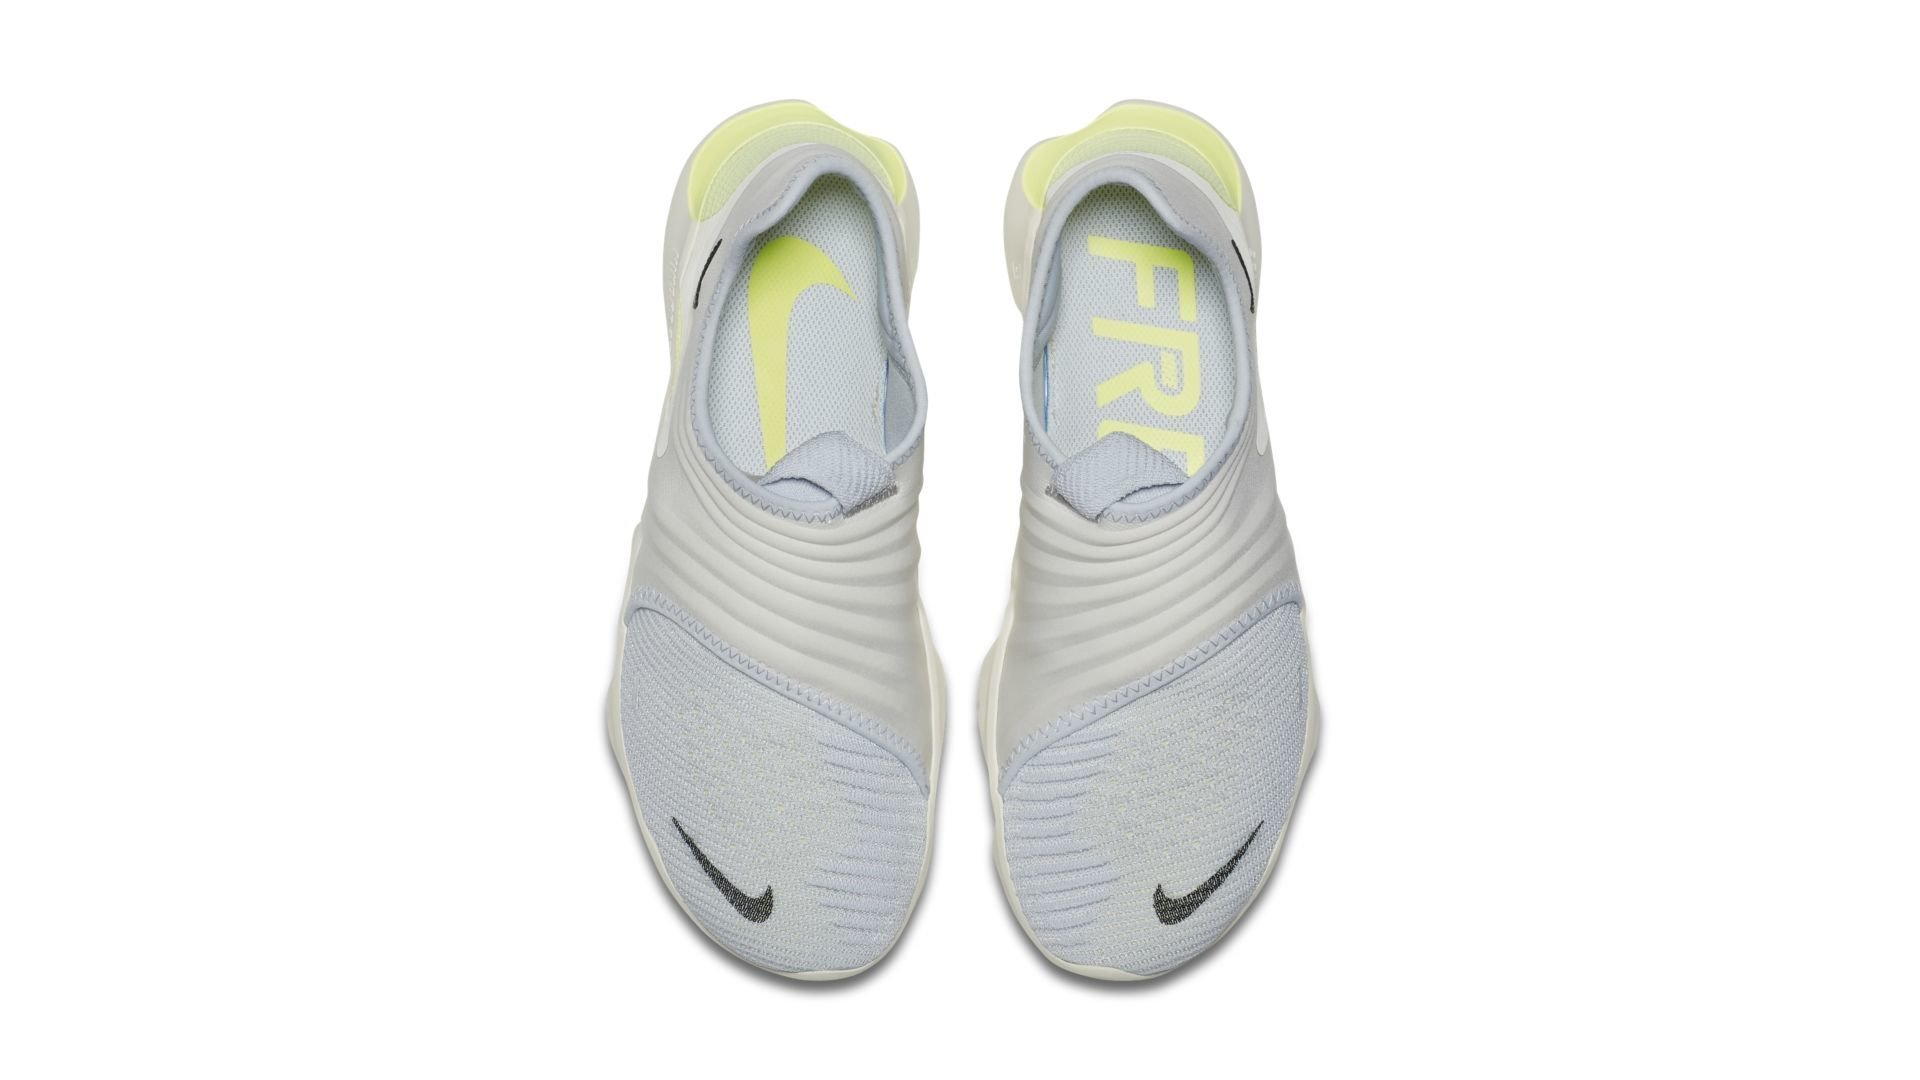 Nike Free RN Flyknit 3.0 Pure Platinum Luminous Green (AQ5707-004)